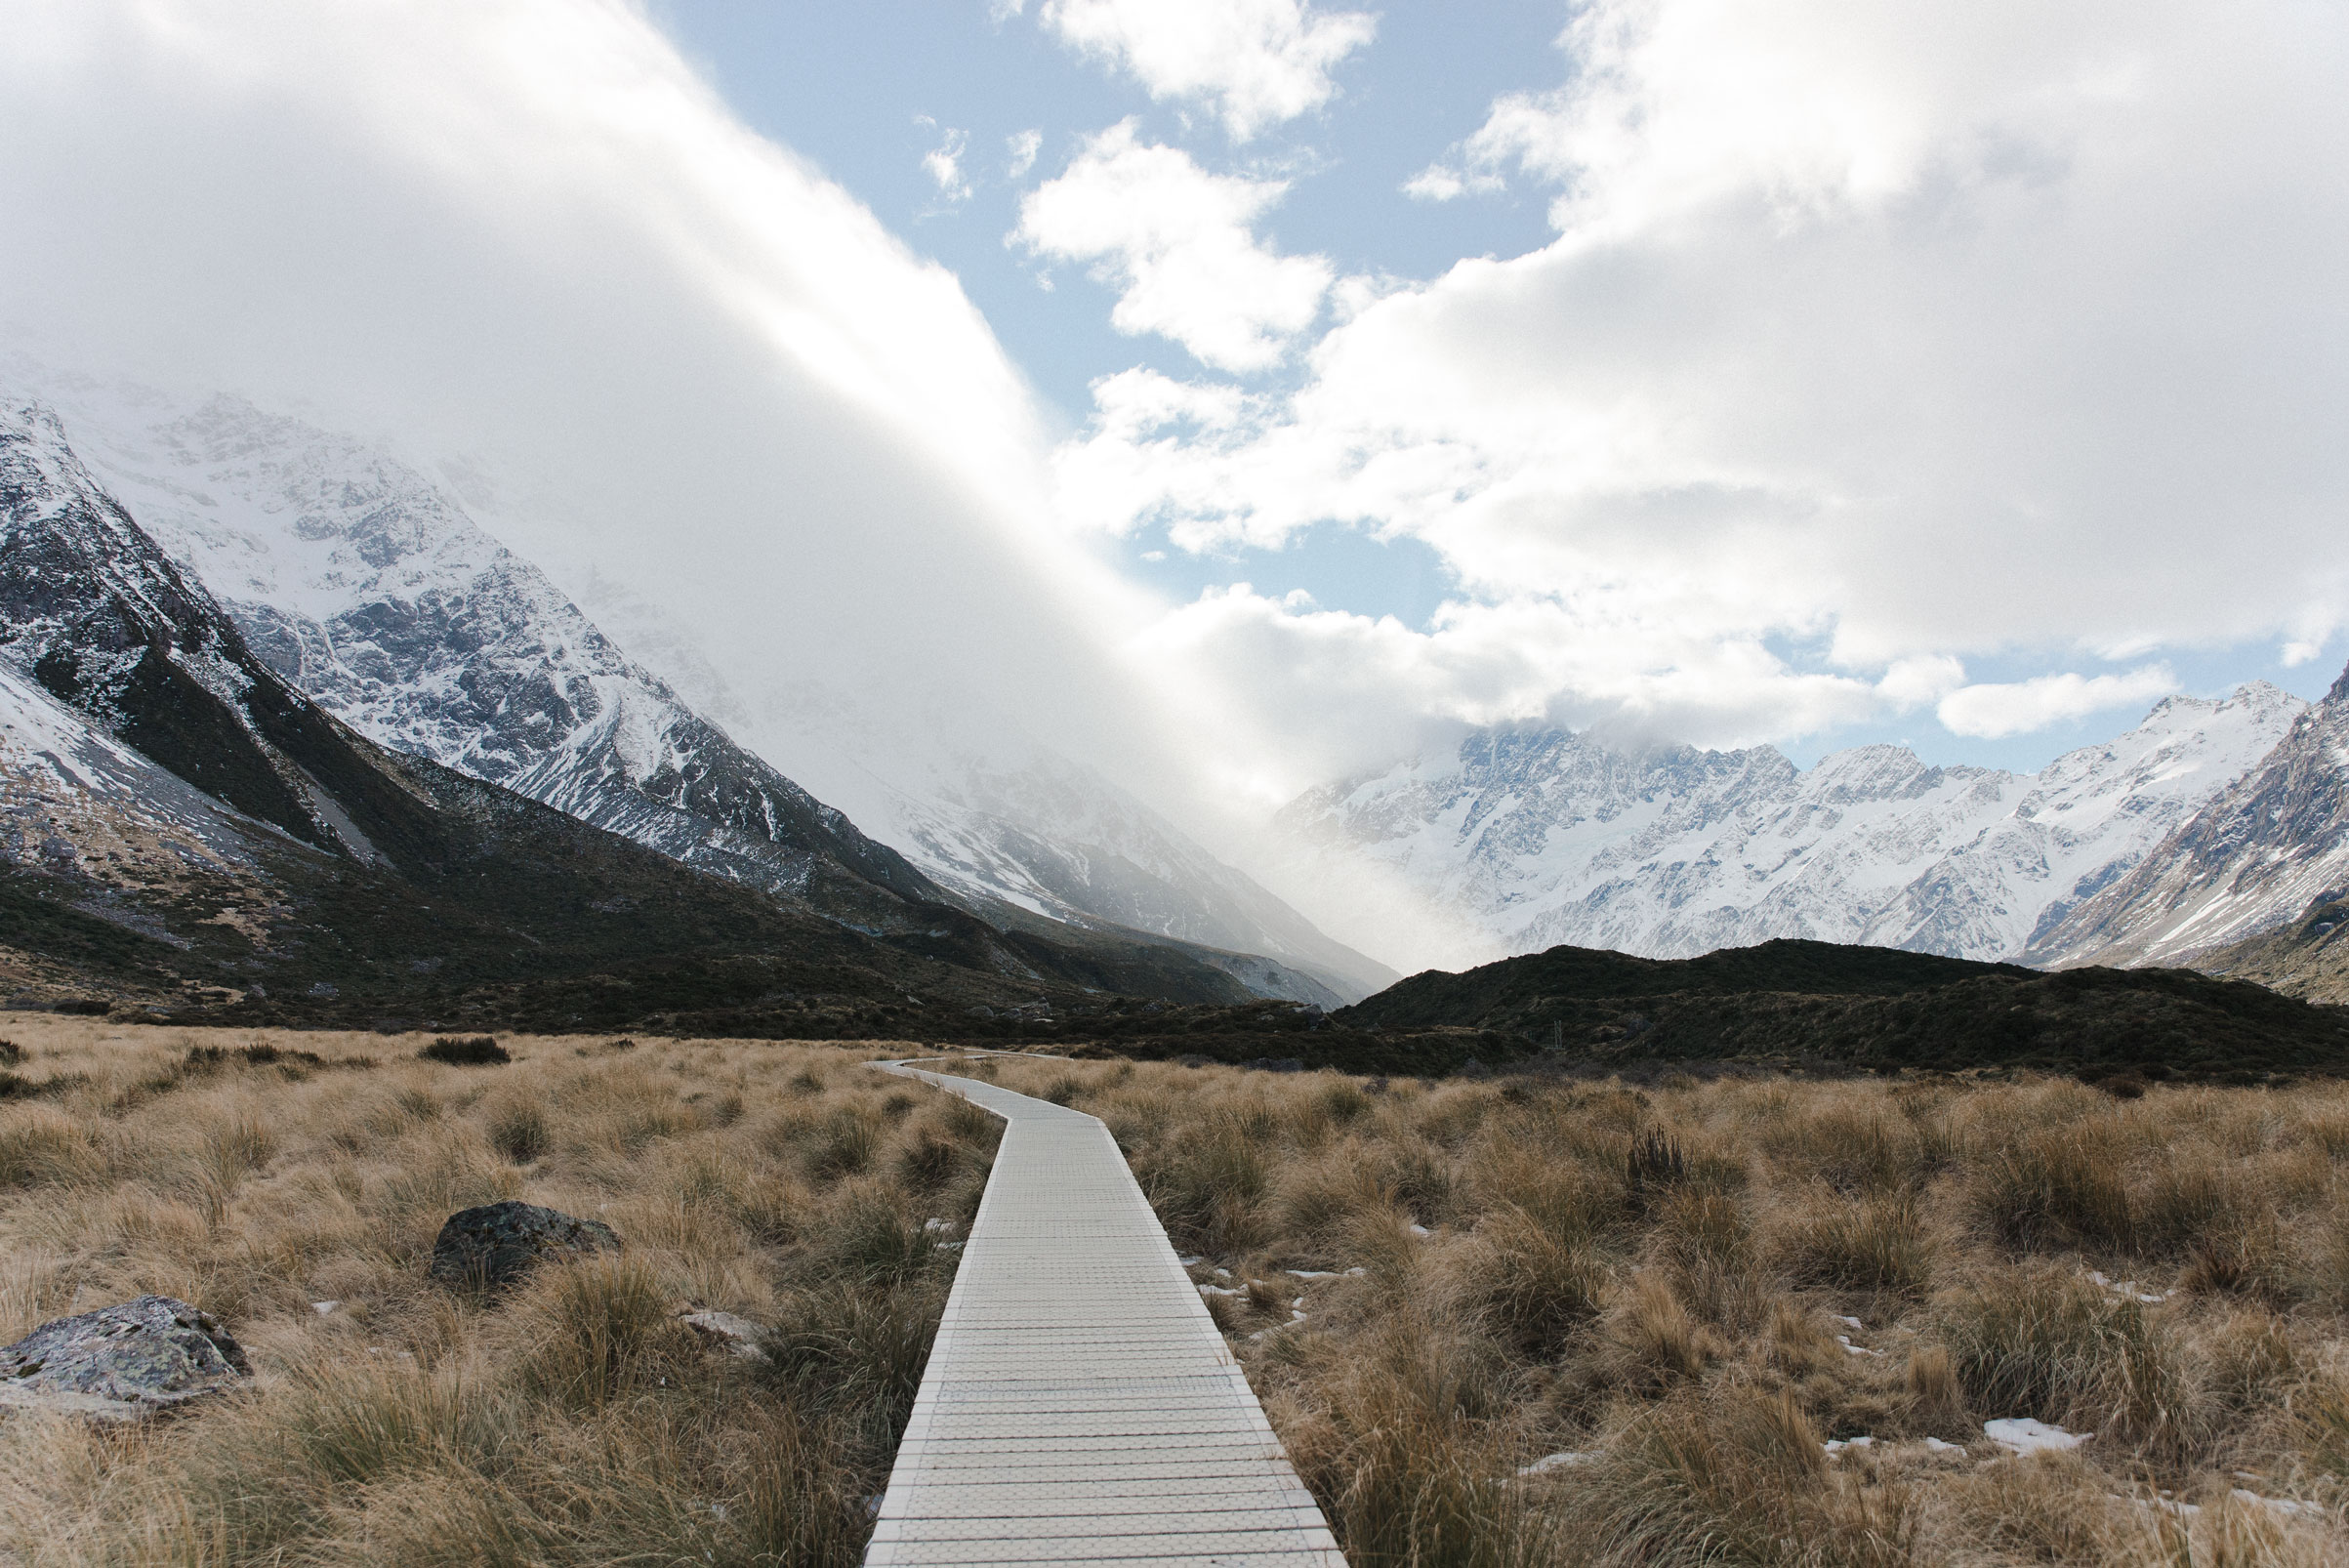 DSC_4193-MT-COOK-WEB.jpg